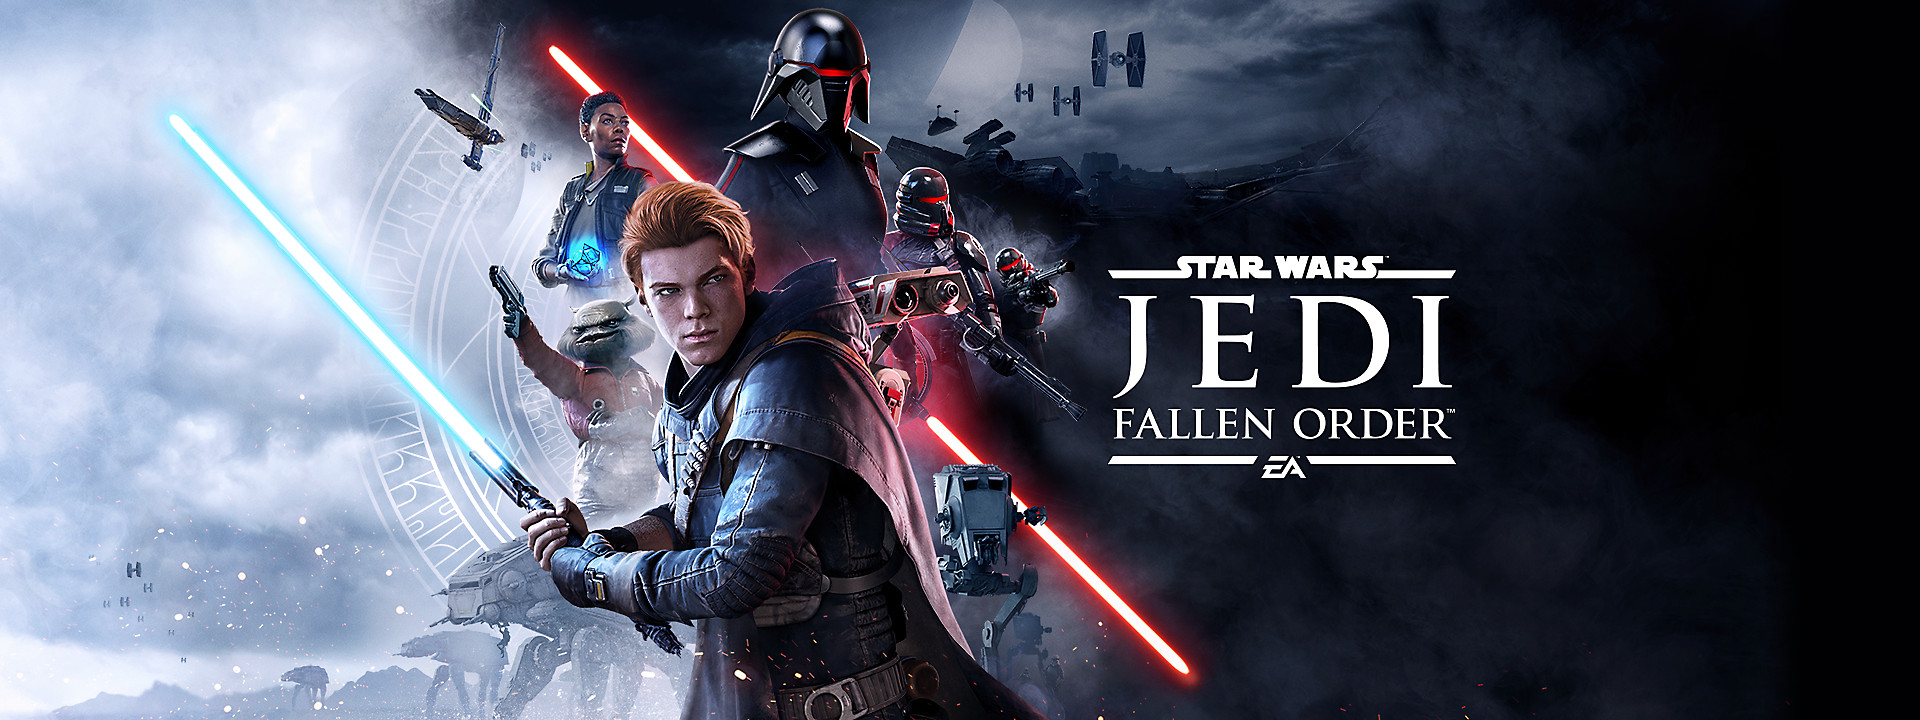 STAR WARS Jedi: Fallen Order - Coming November 15